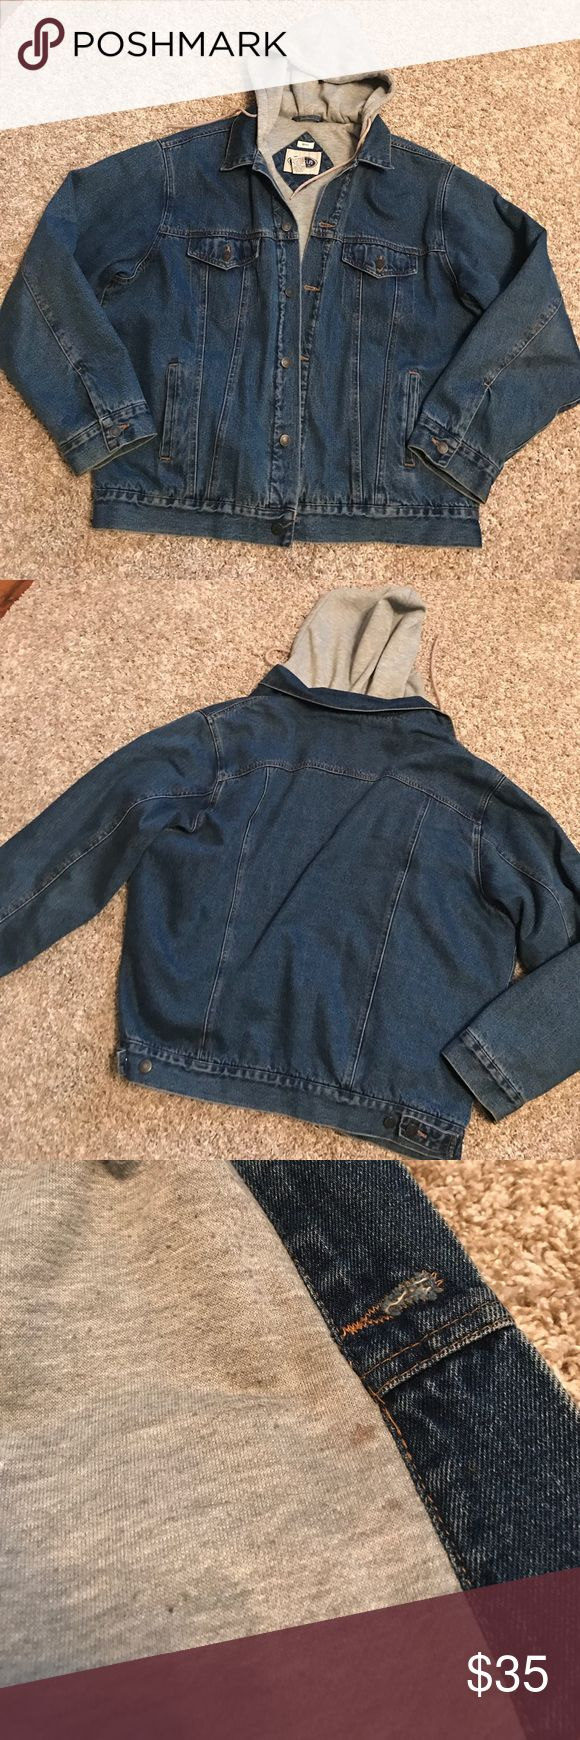 Men's Jean Jacket with Lined sweater hoodie Men's Jean jacket lined with an attached gray sweater hoodie.  In good used condition other than pilling on the inside sweater and a few minor stains on the inside.  Men's size XL.  Make an offer! austin clothing co Jackets & Coats